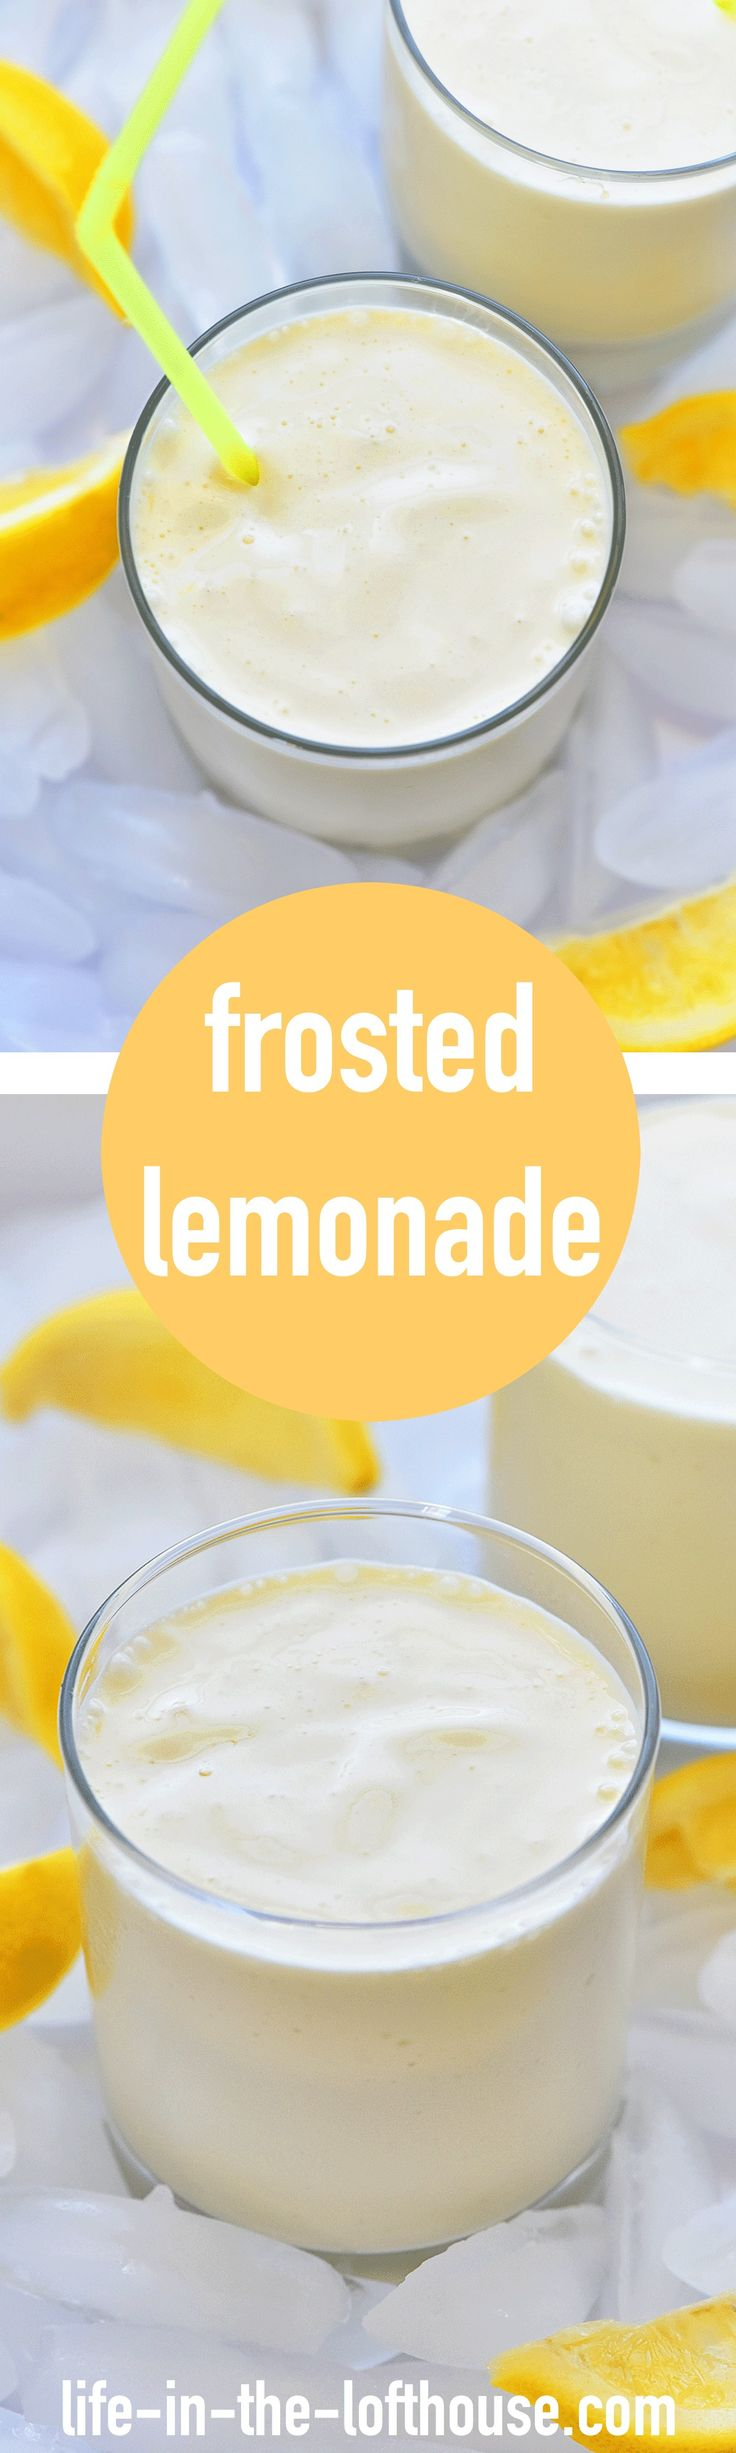 It's way to hot outside. So what better way to cool of than with a refreshing cold drink! This FROSTED LEMONADE is so delicious.... Read More »